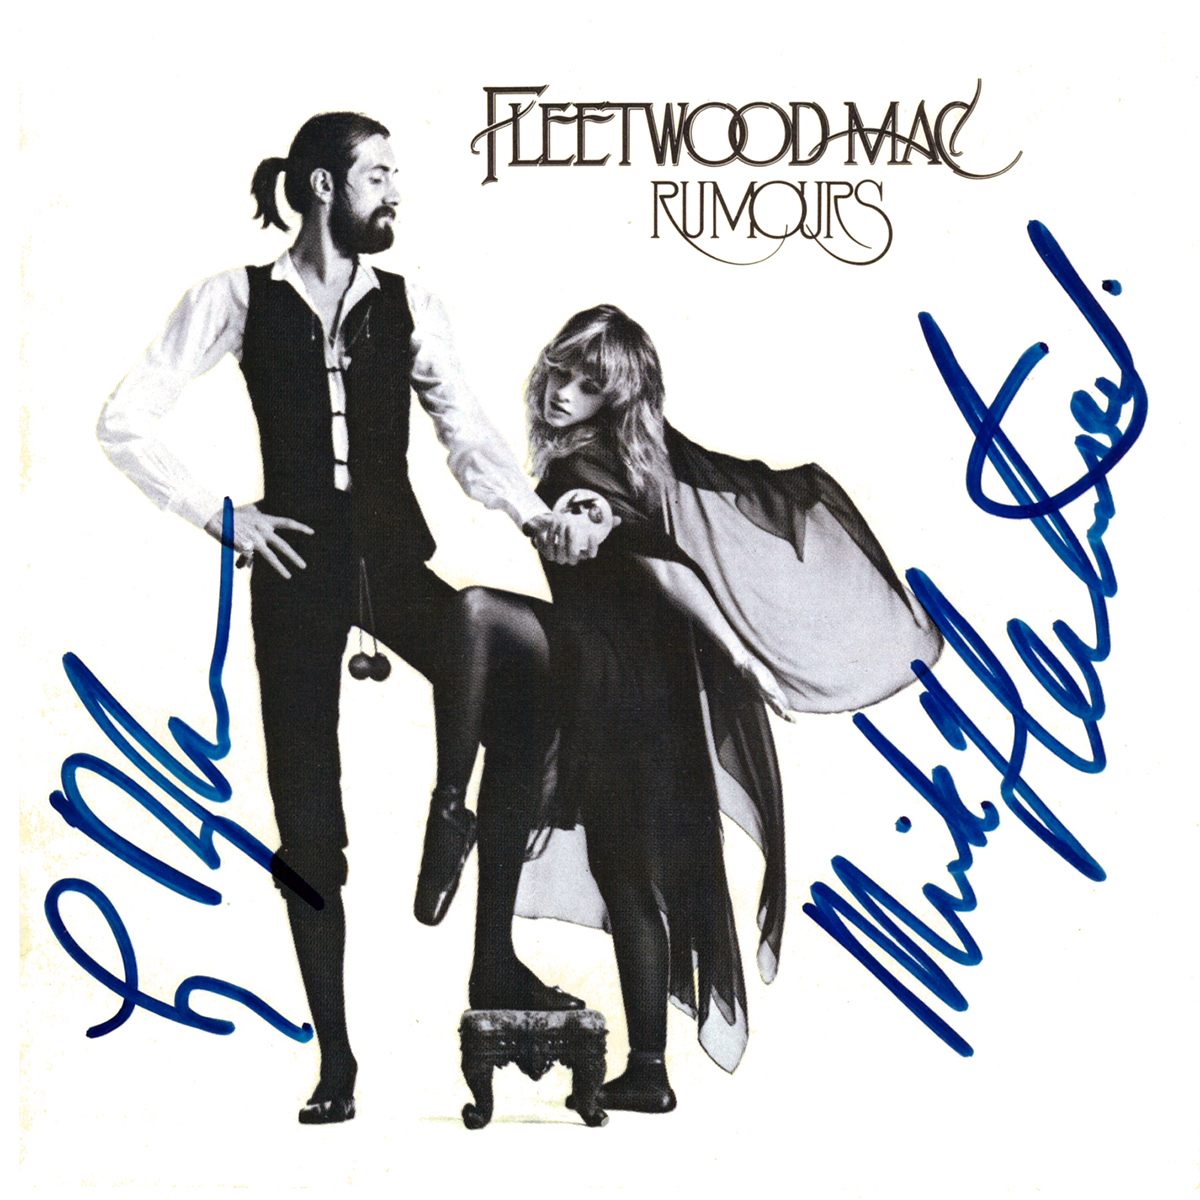 CD Cover - Fleetwood Mac - Rumors #1